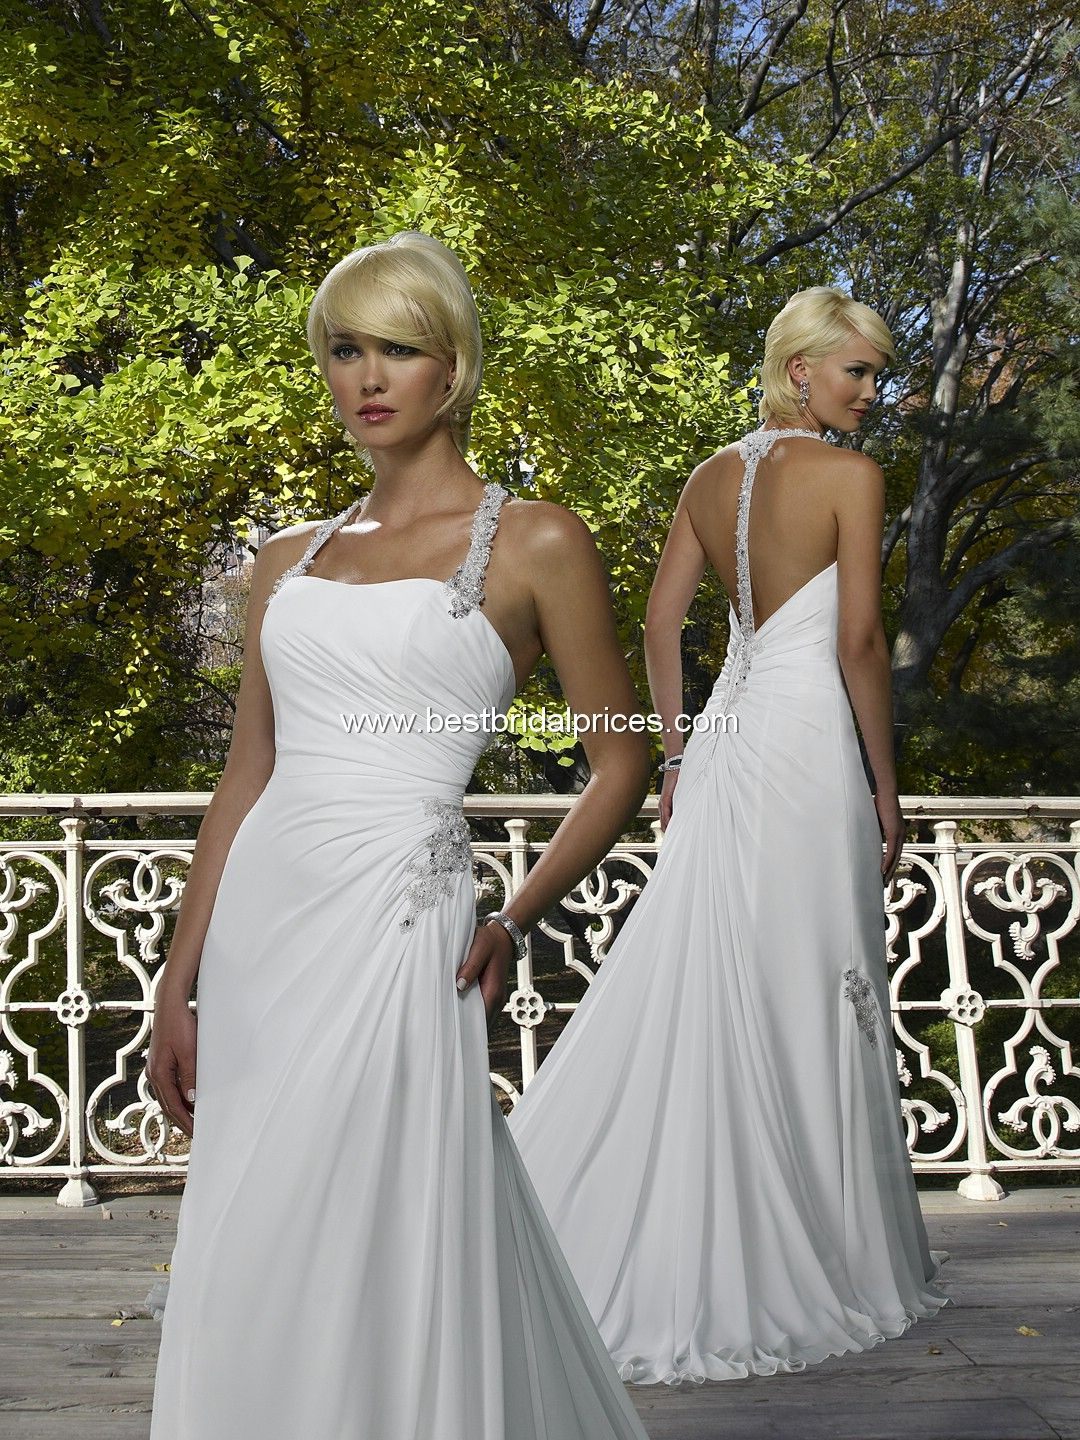 Fantasy by forever yours wedding dresses style 410224 wedding fantasy by forever yours wedding dresses style 410224 ombrellifo Gallery